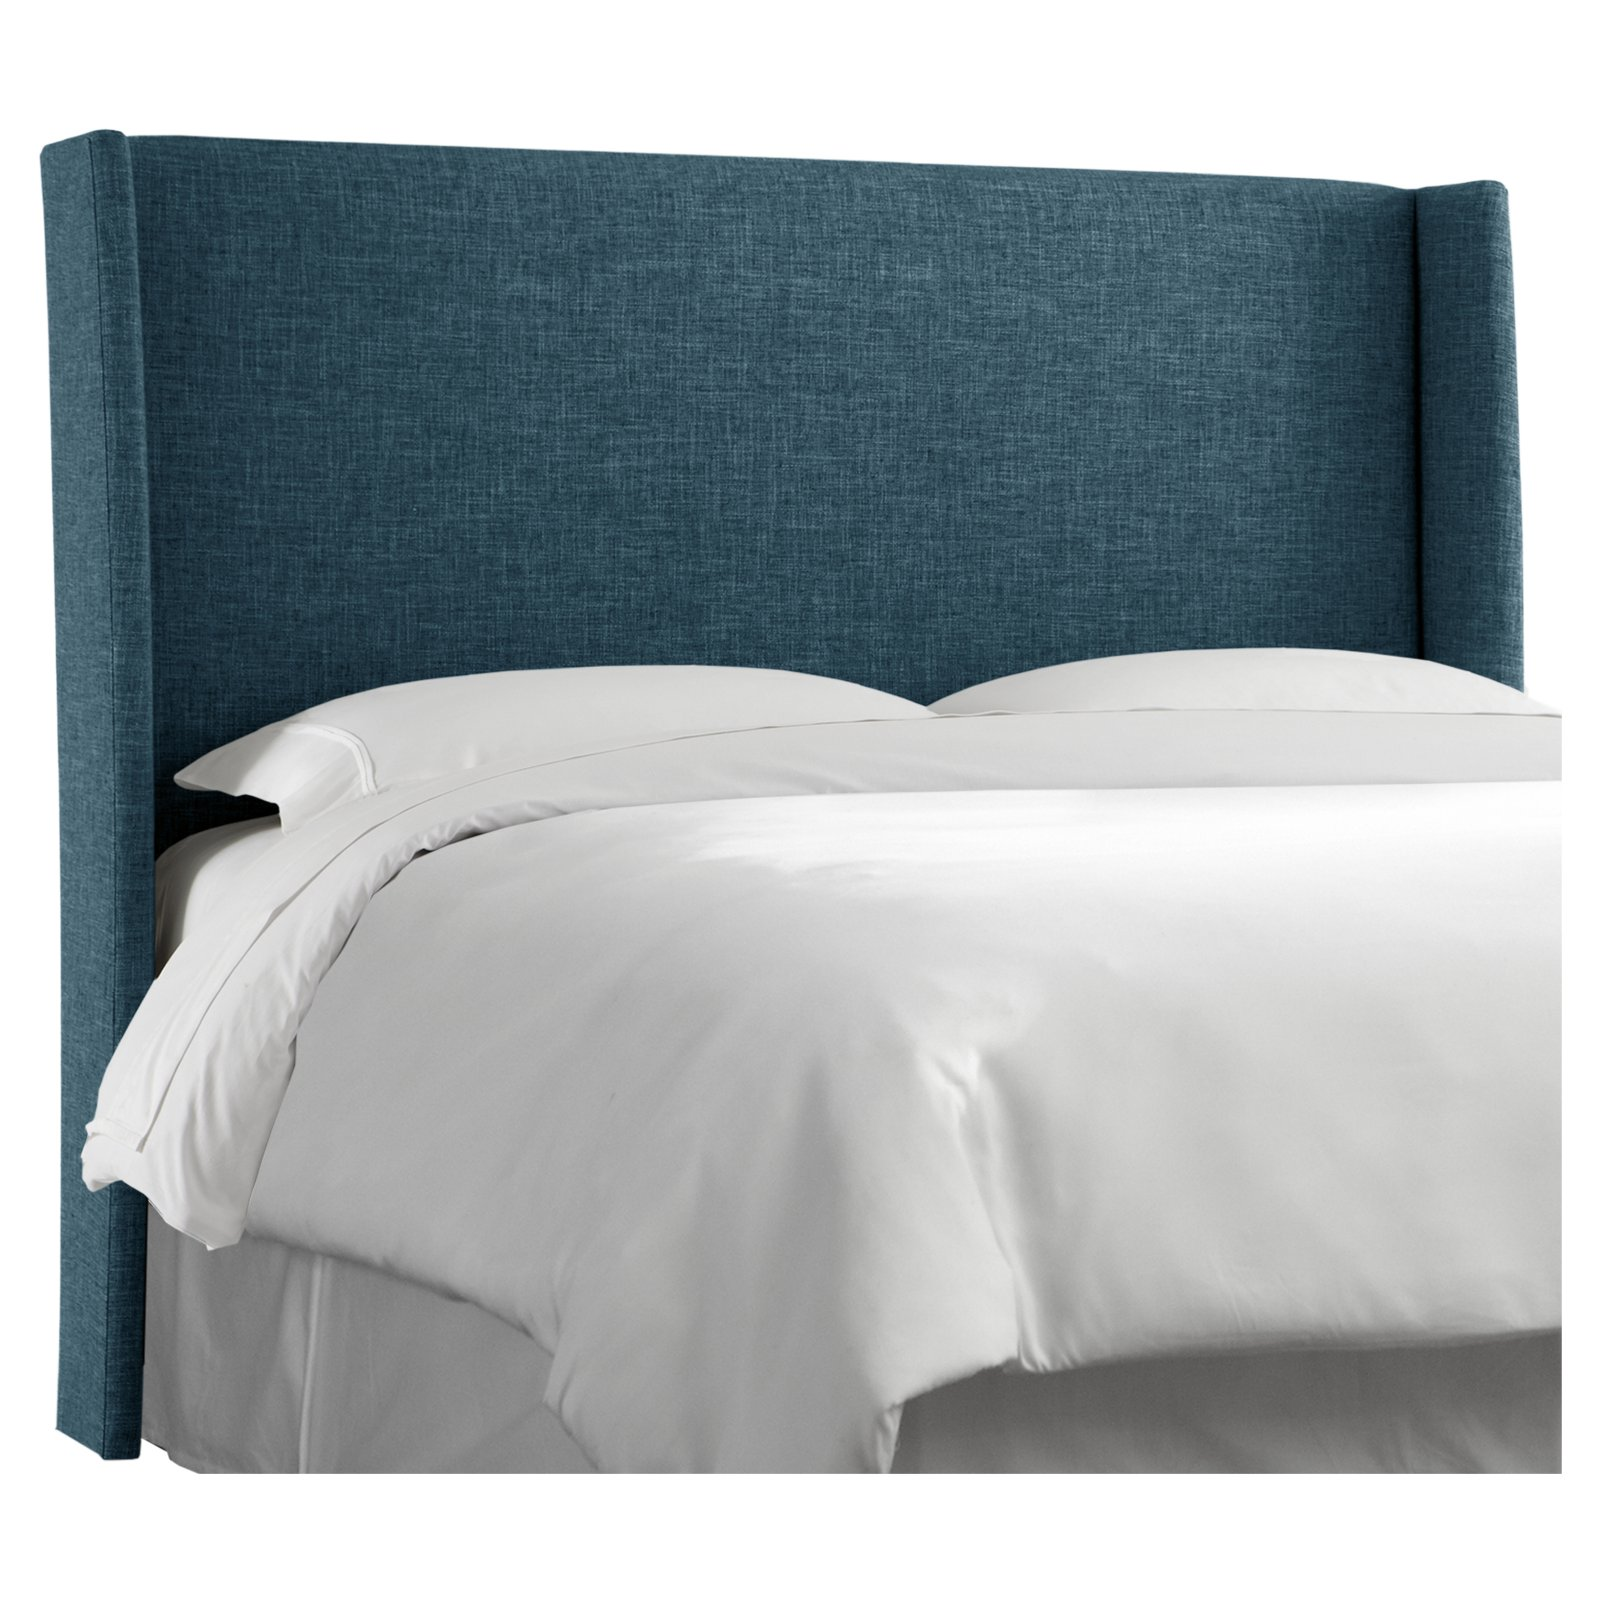 Skyline Zuma Wingback Upholstered Headboard